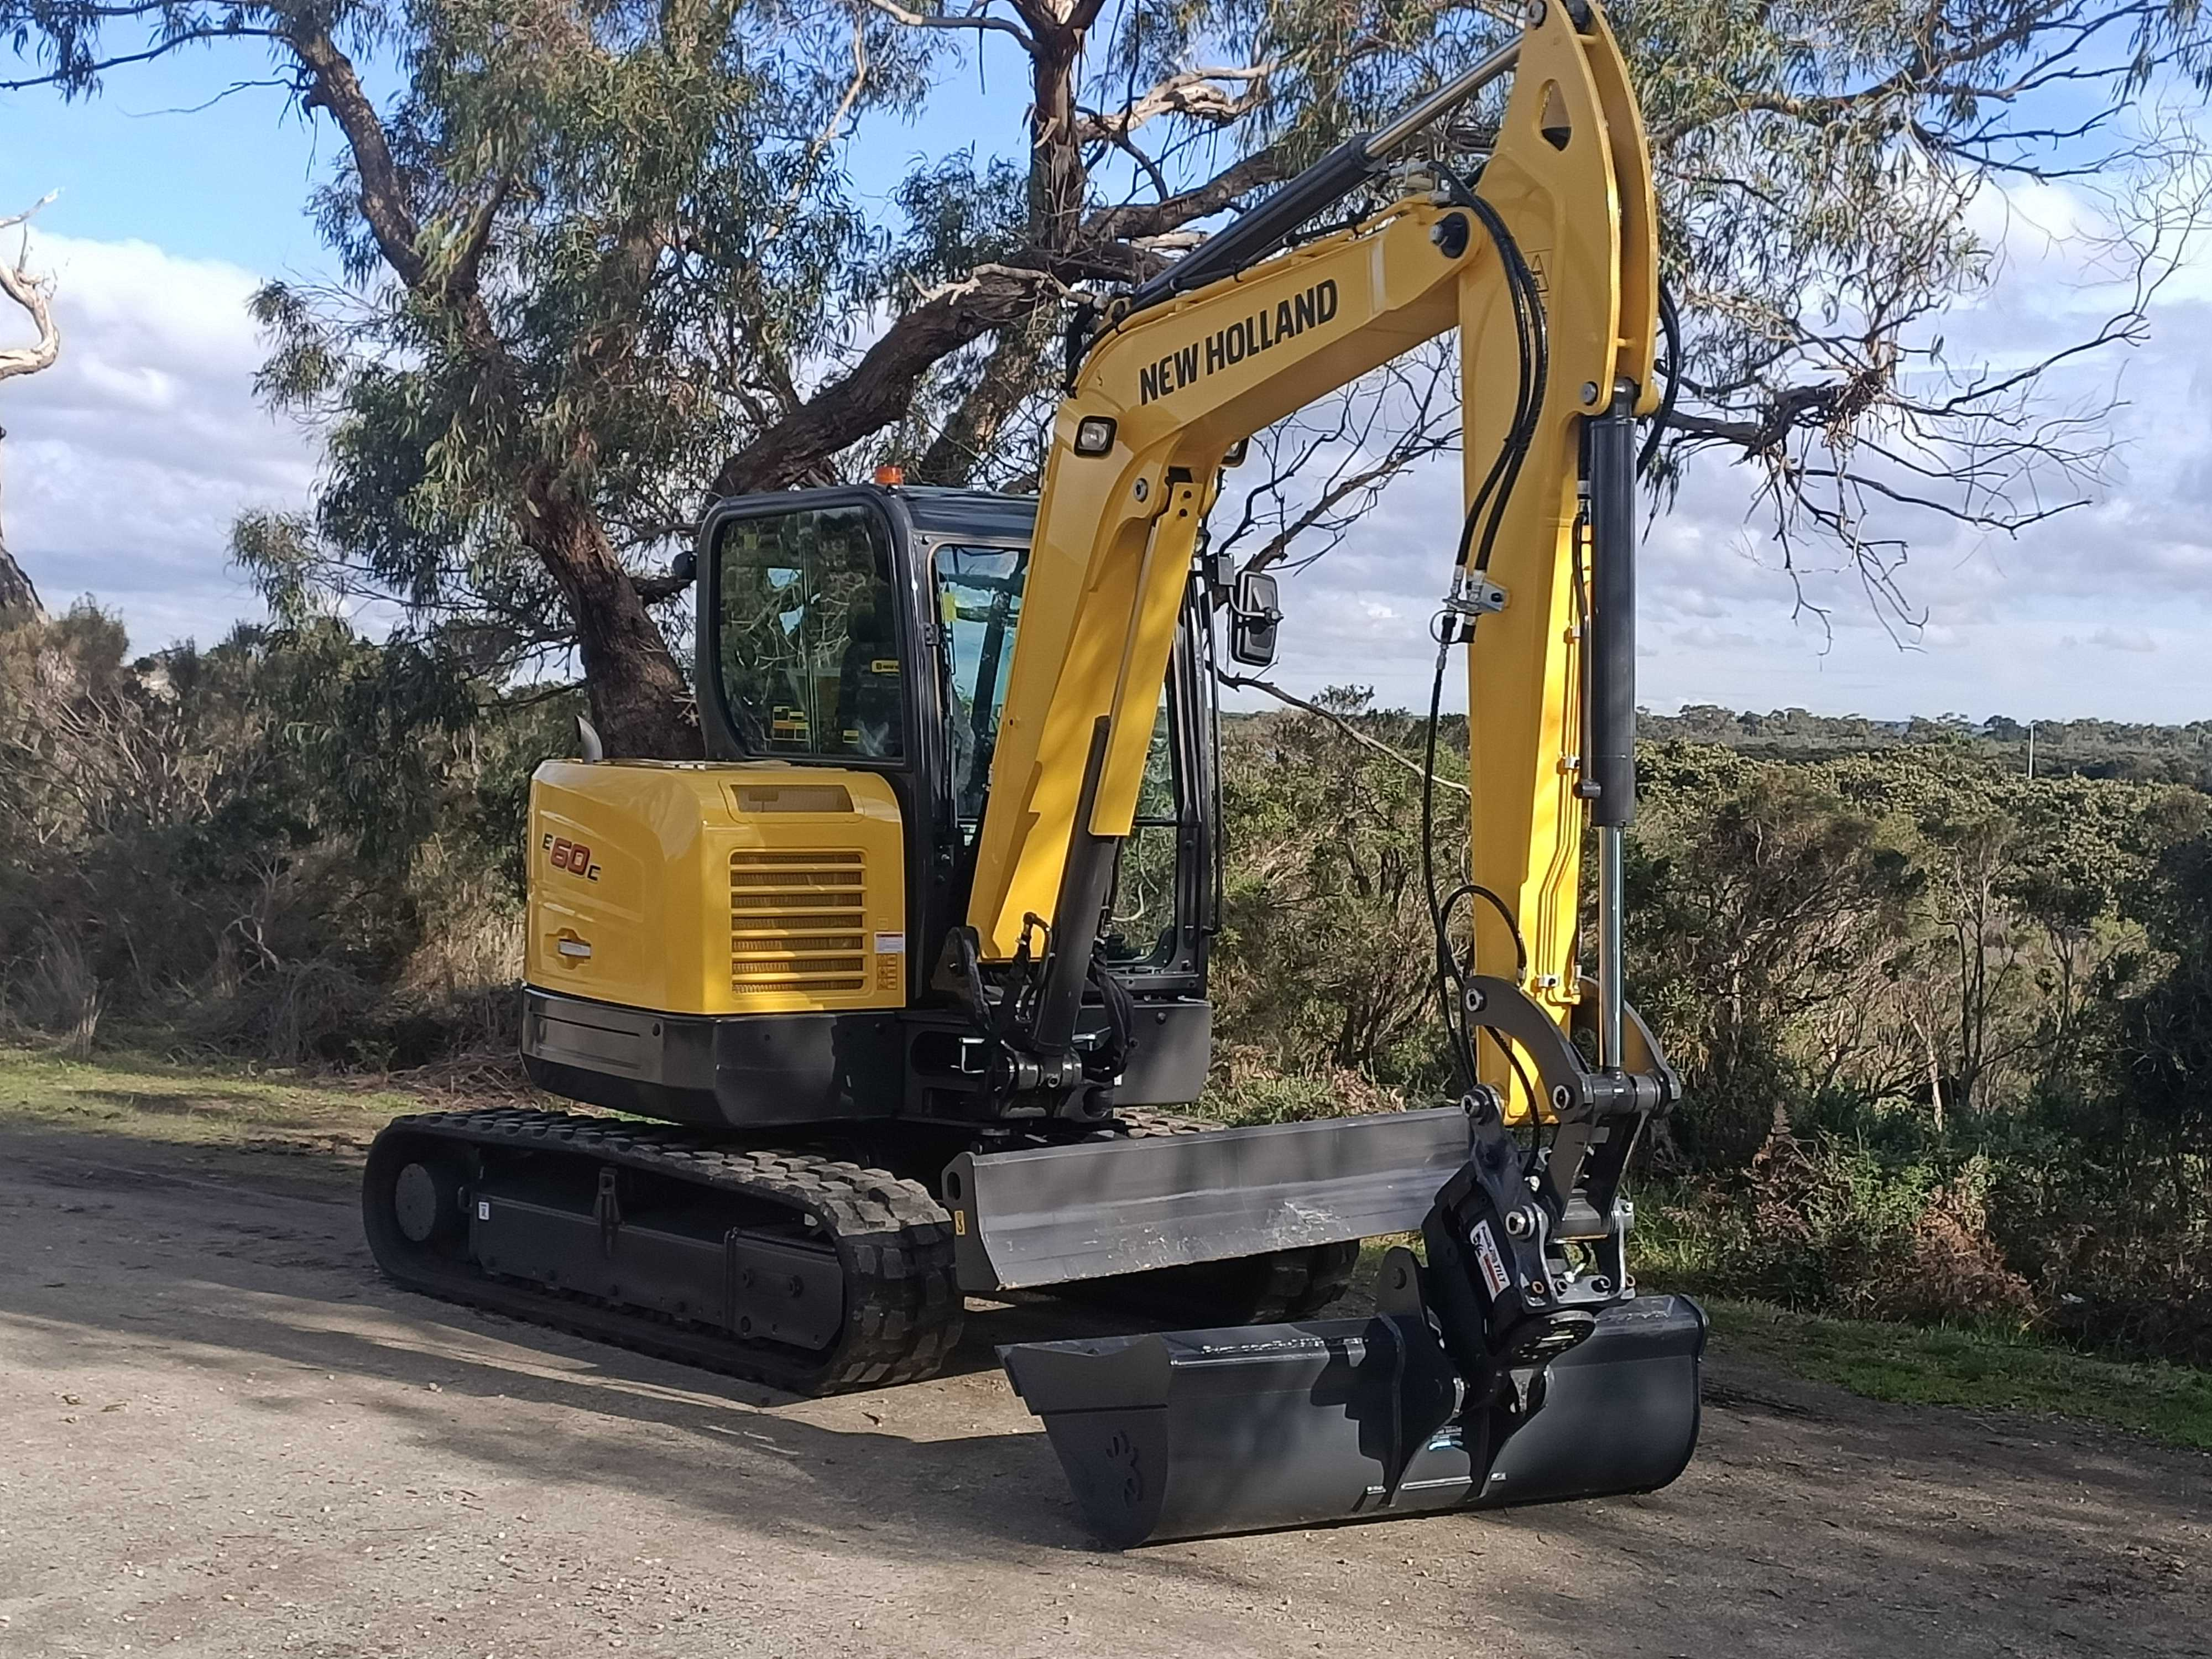 Hire 6t excavator with tilt hitch and the buckets